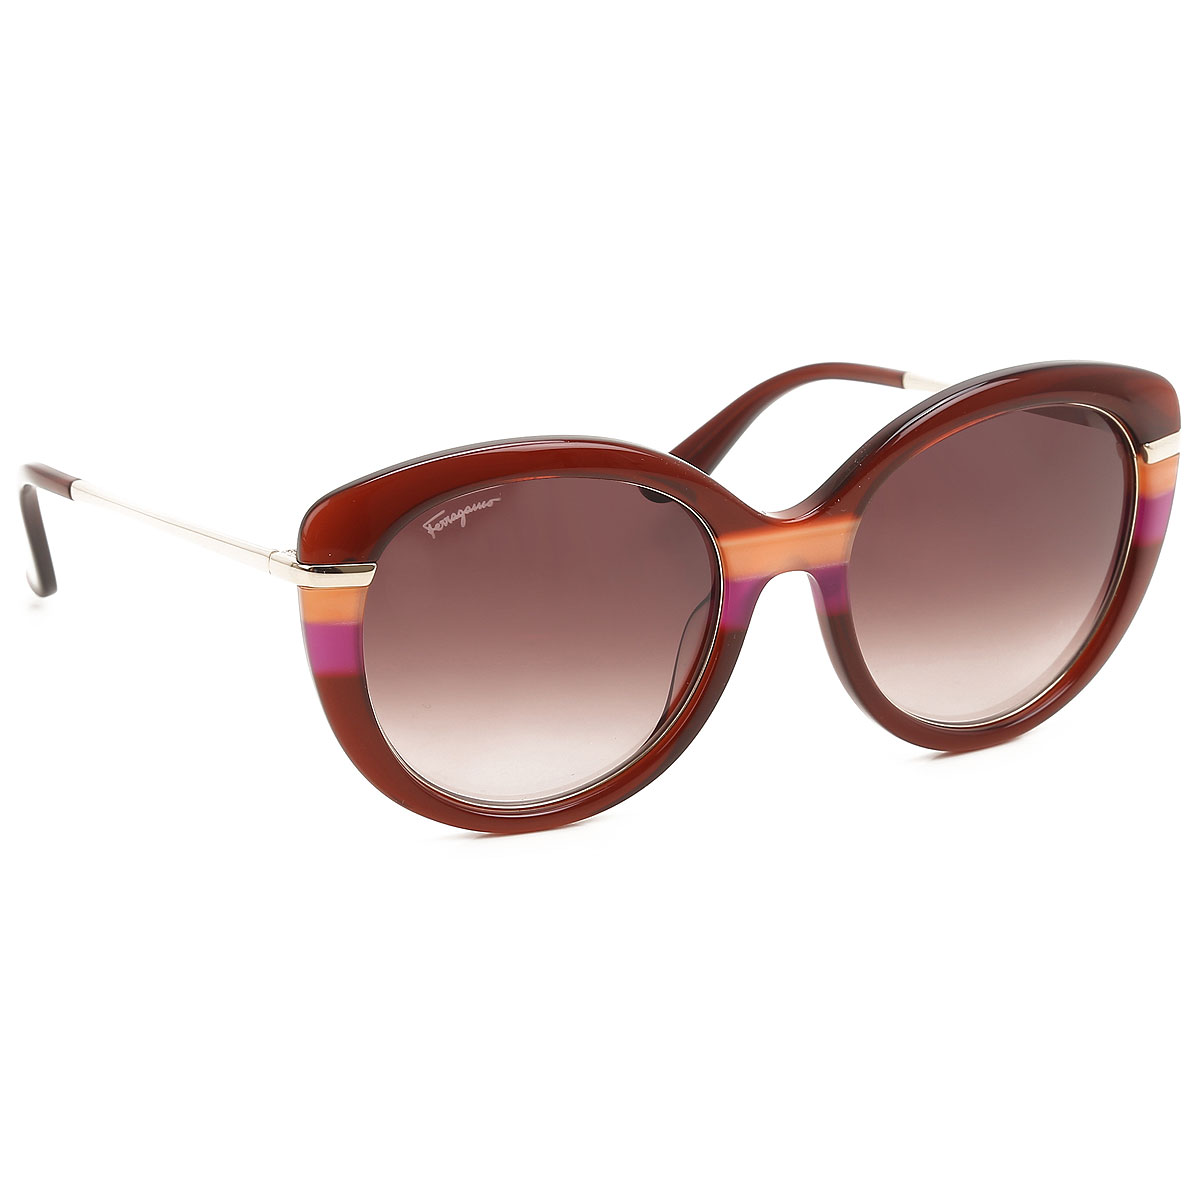 Salvatore Ferragamo Sunglasses On Sale, Burgundy, 2021 from Salvatore Ferragamo